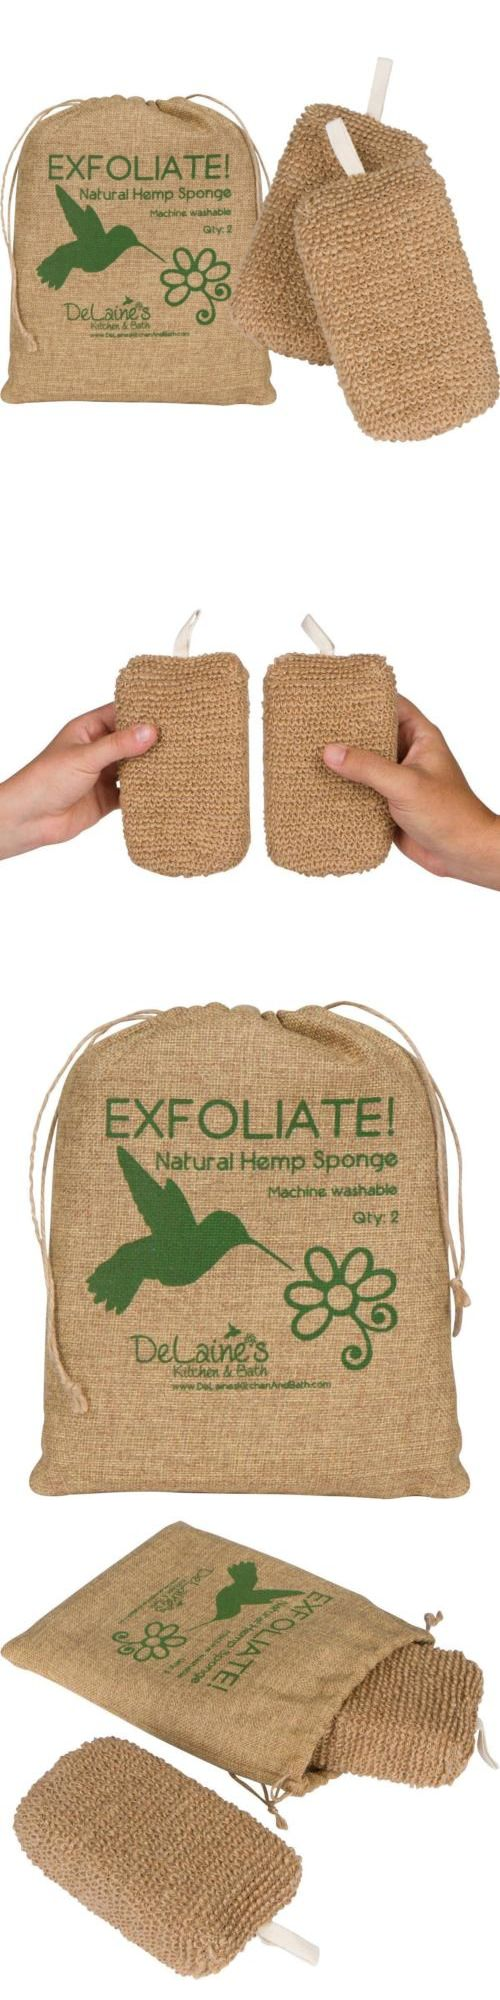 Bath Brushes and Sponges: Delaine'S Exfoliating Body Scrubber - Natural Hemp Covered Sponges Set Of 2... -> BUY IT NOW ONLY: $75.38 on eBay!